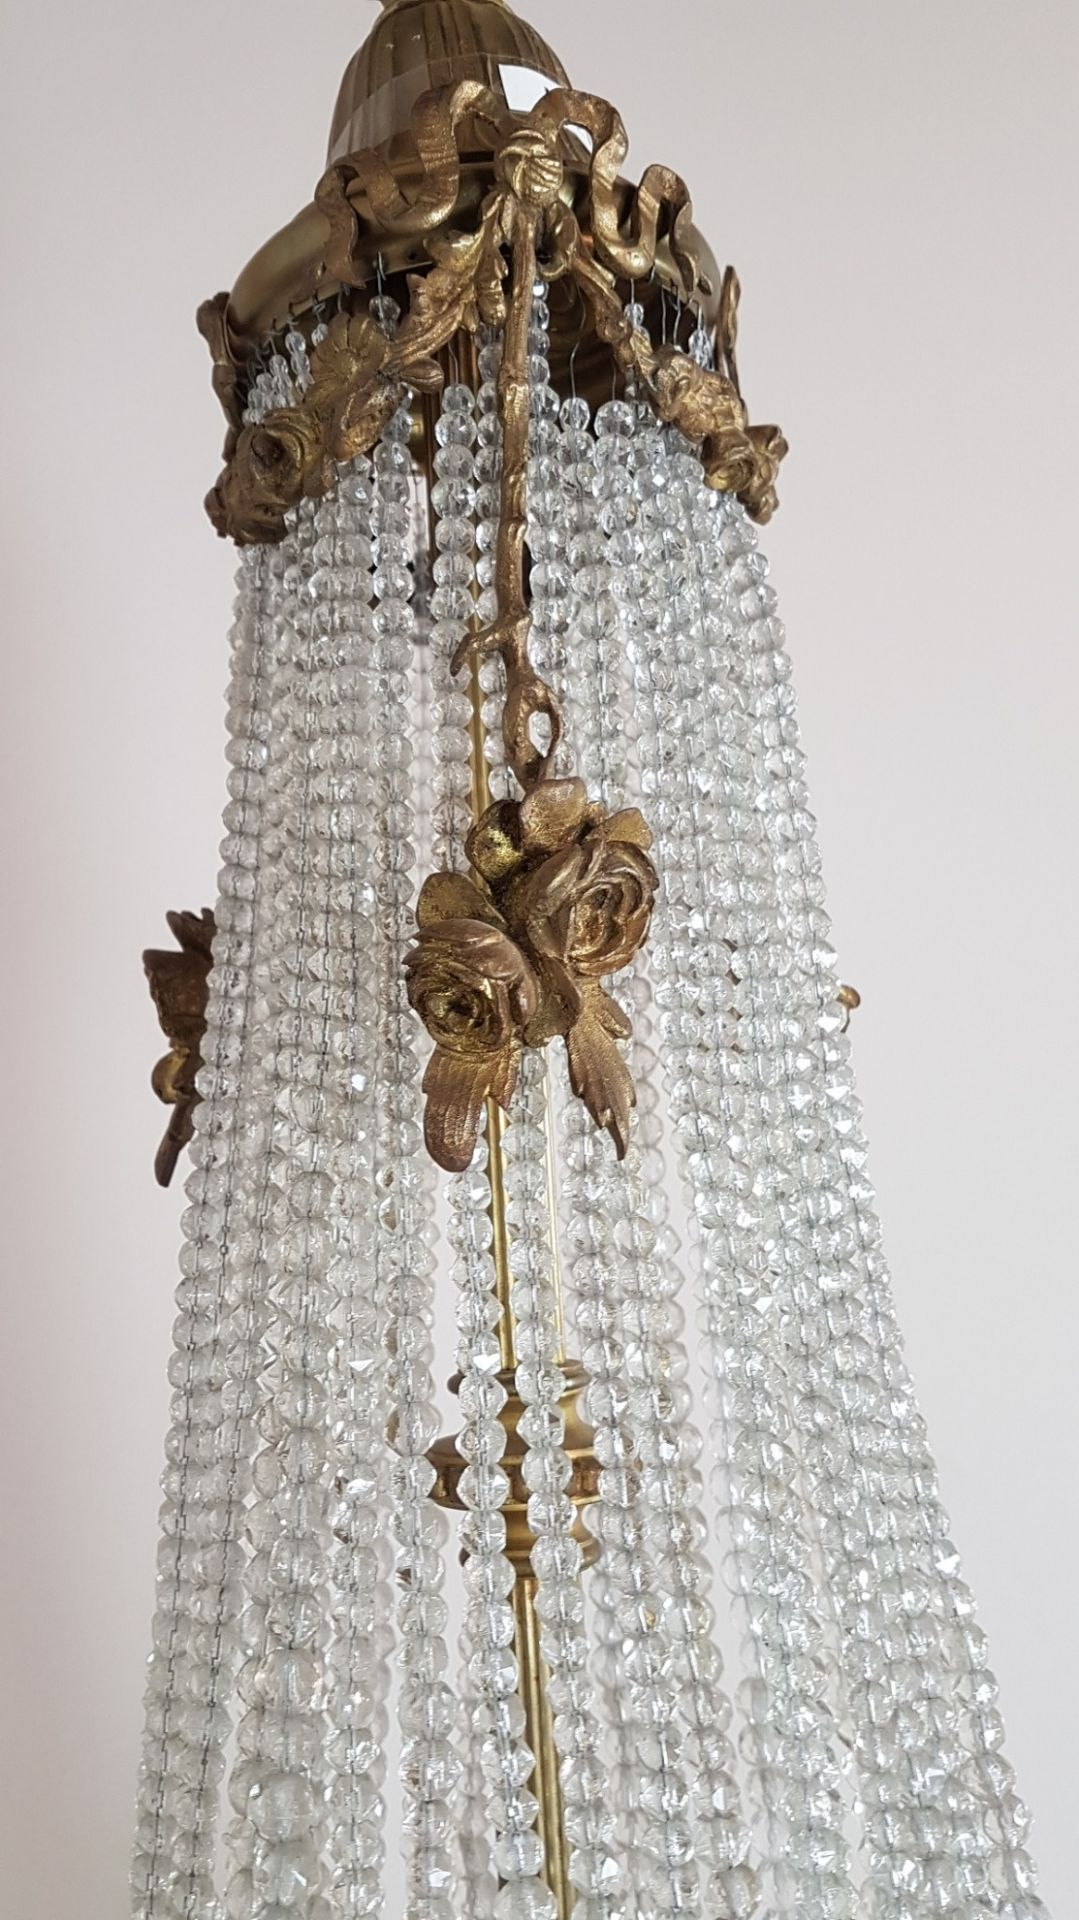 Antique French Empire Gilded Bronze and Crystals Luxury Chandelier